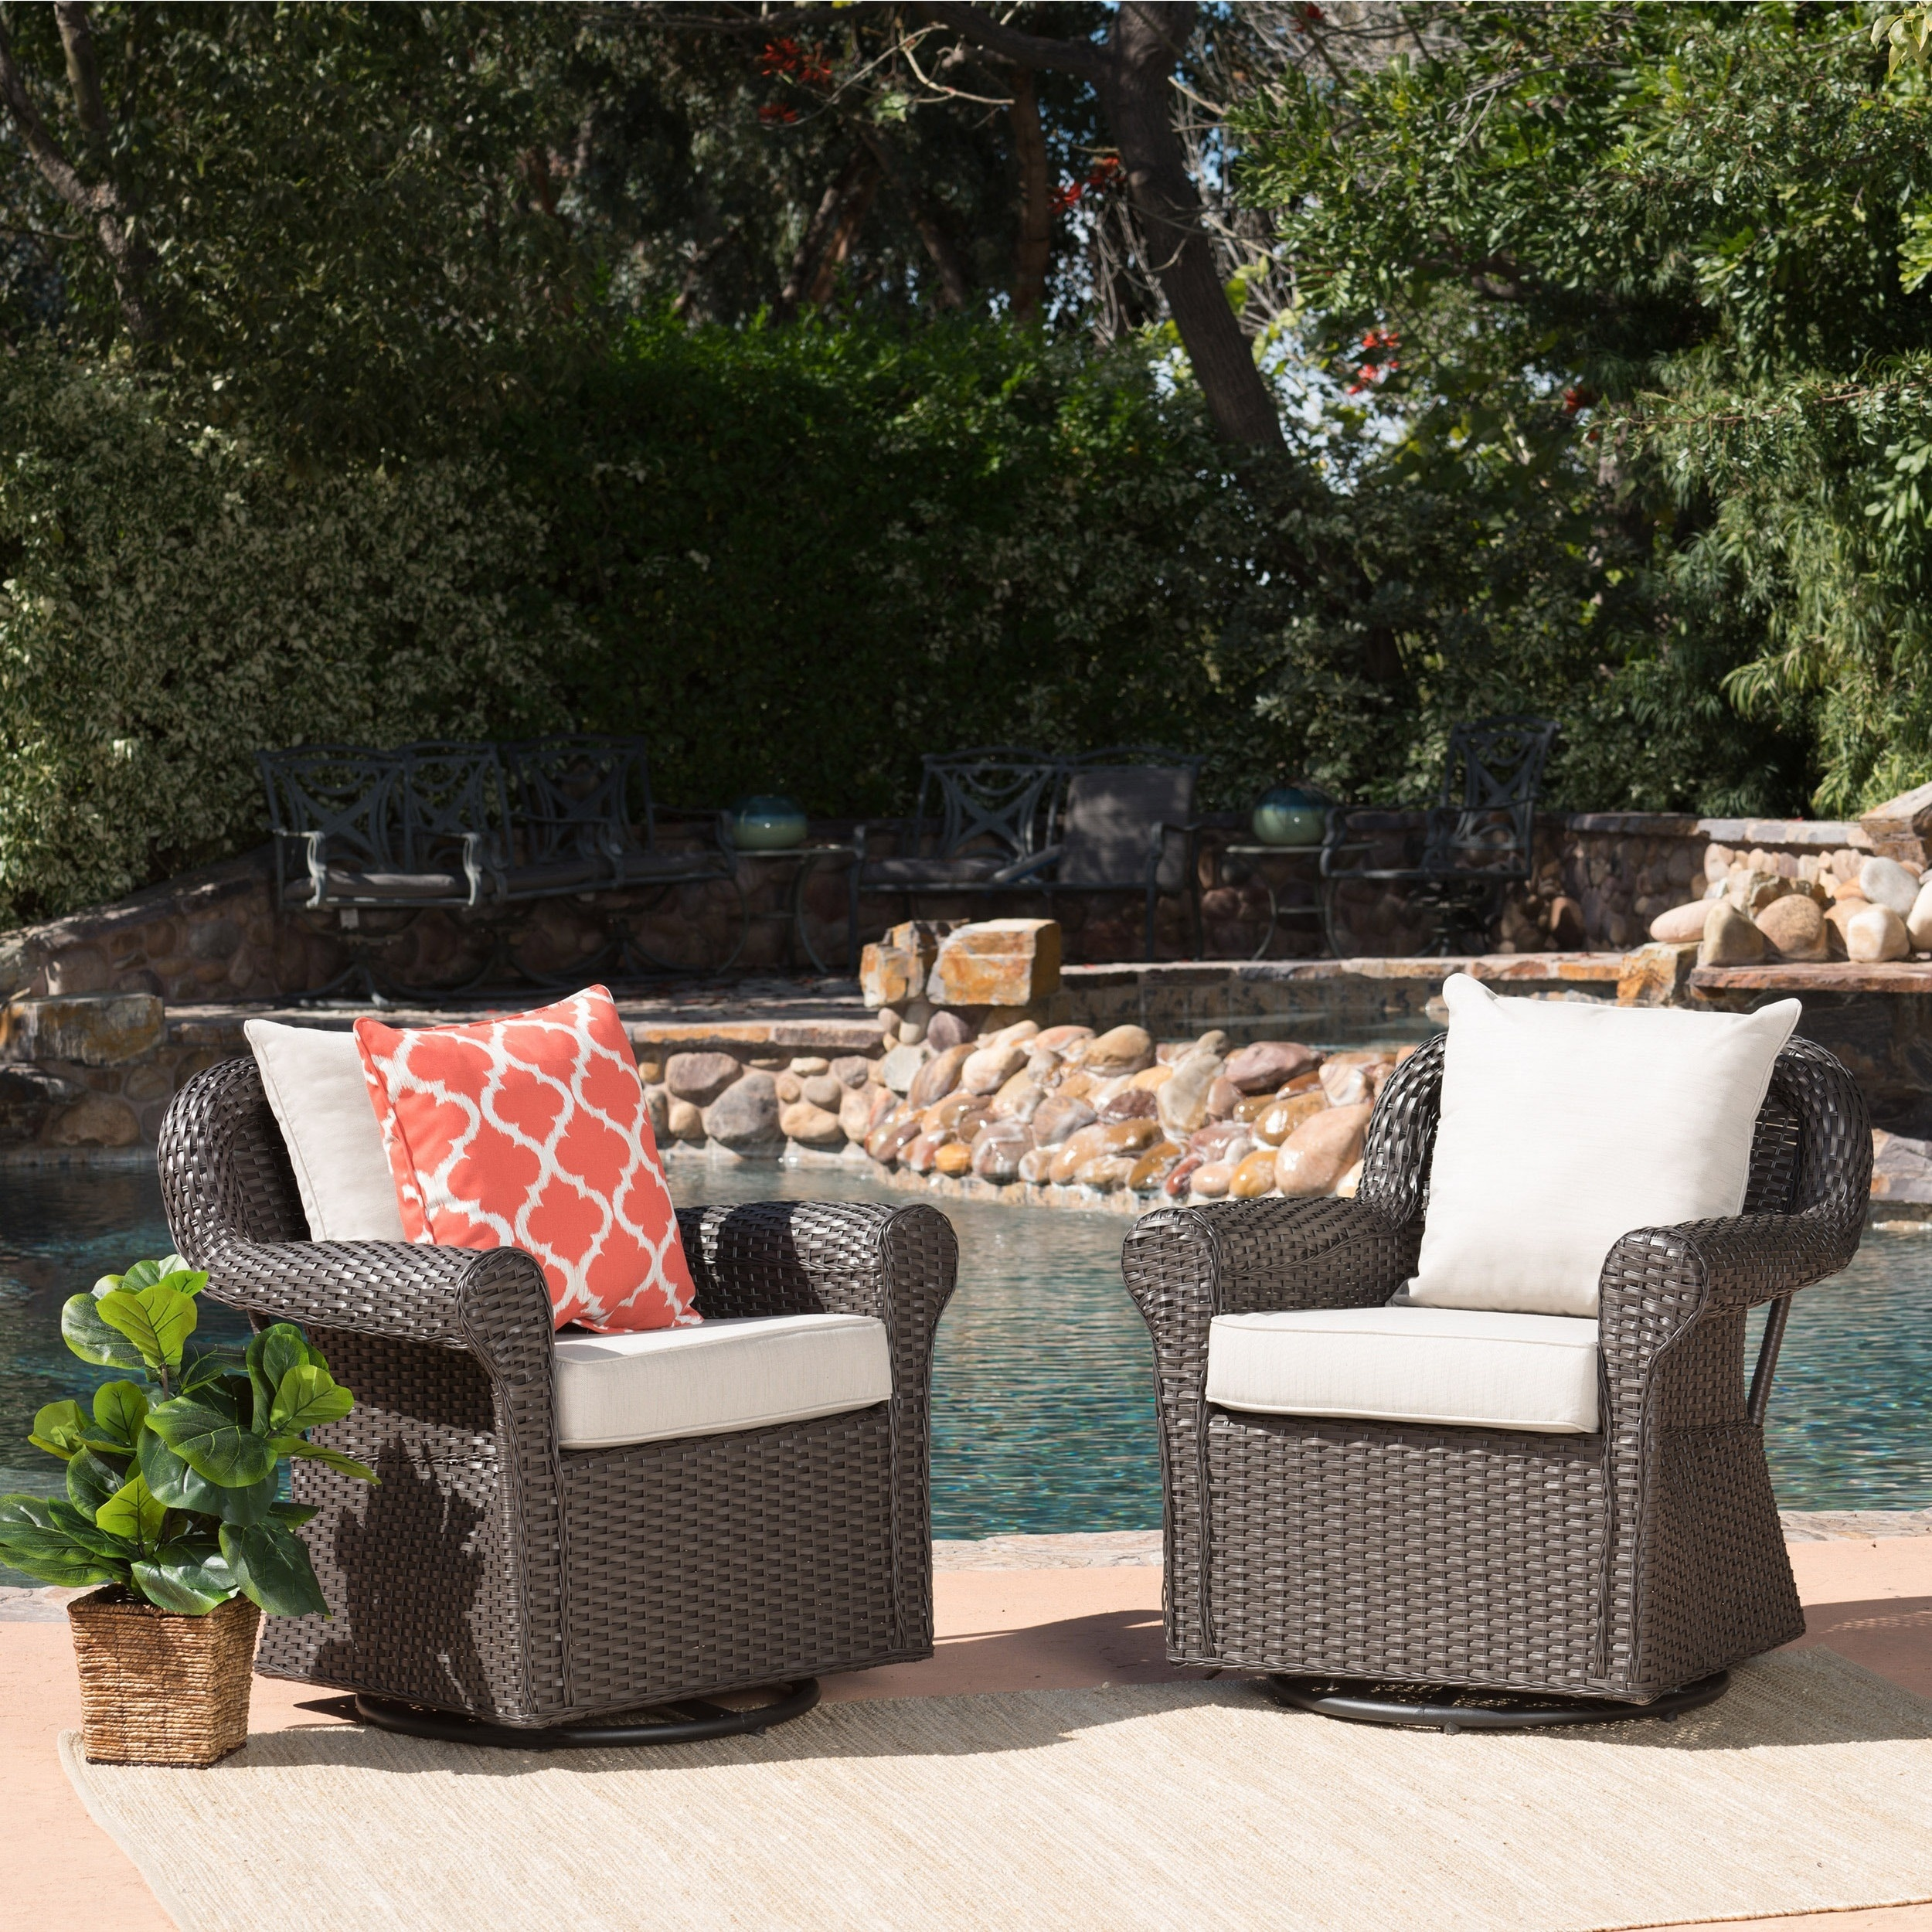 patio cushions Garden & Patio Furniture Set of 2 High chair upholstery cushions Garden furniture Chair Cushion Polyester